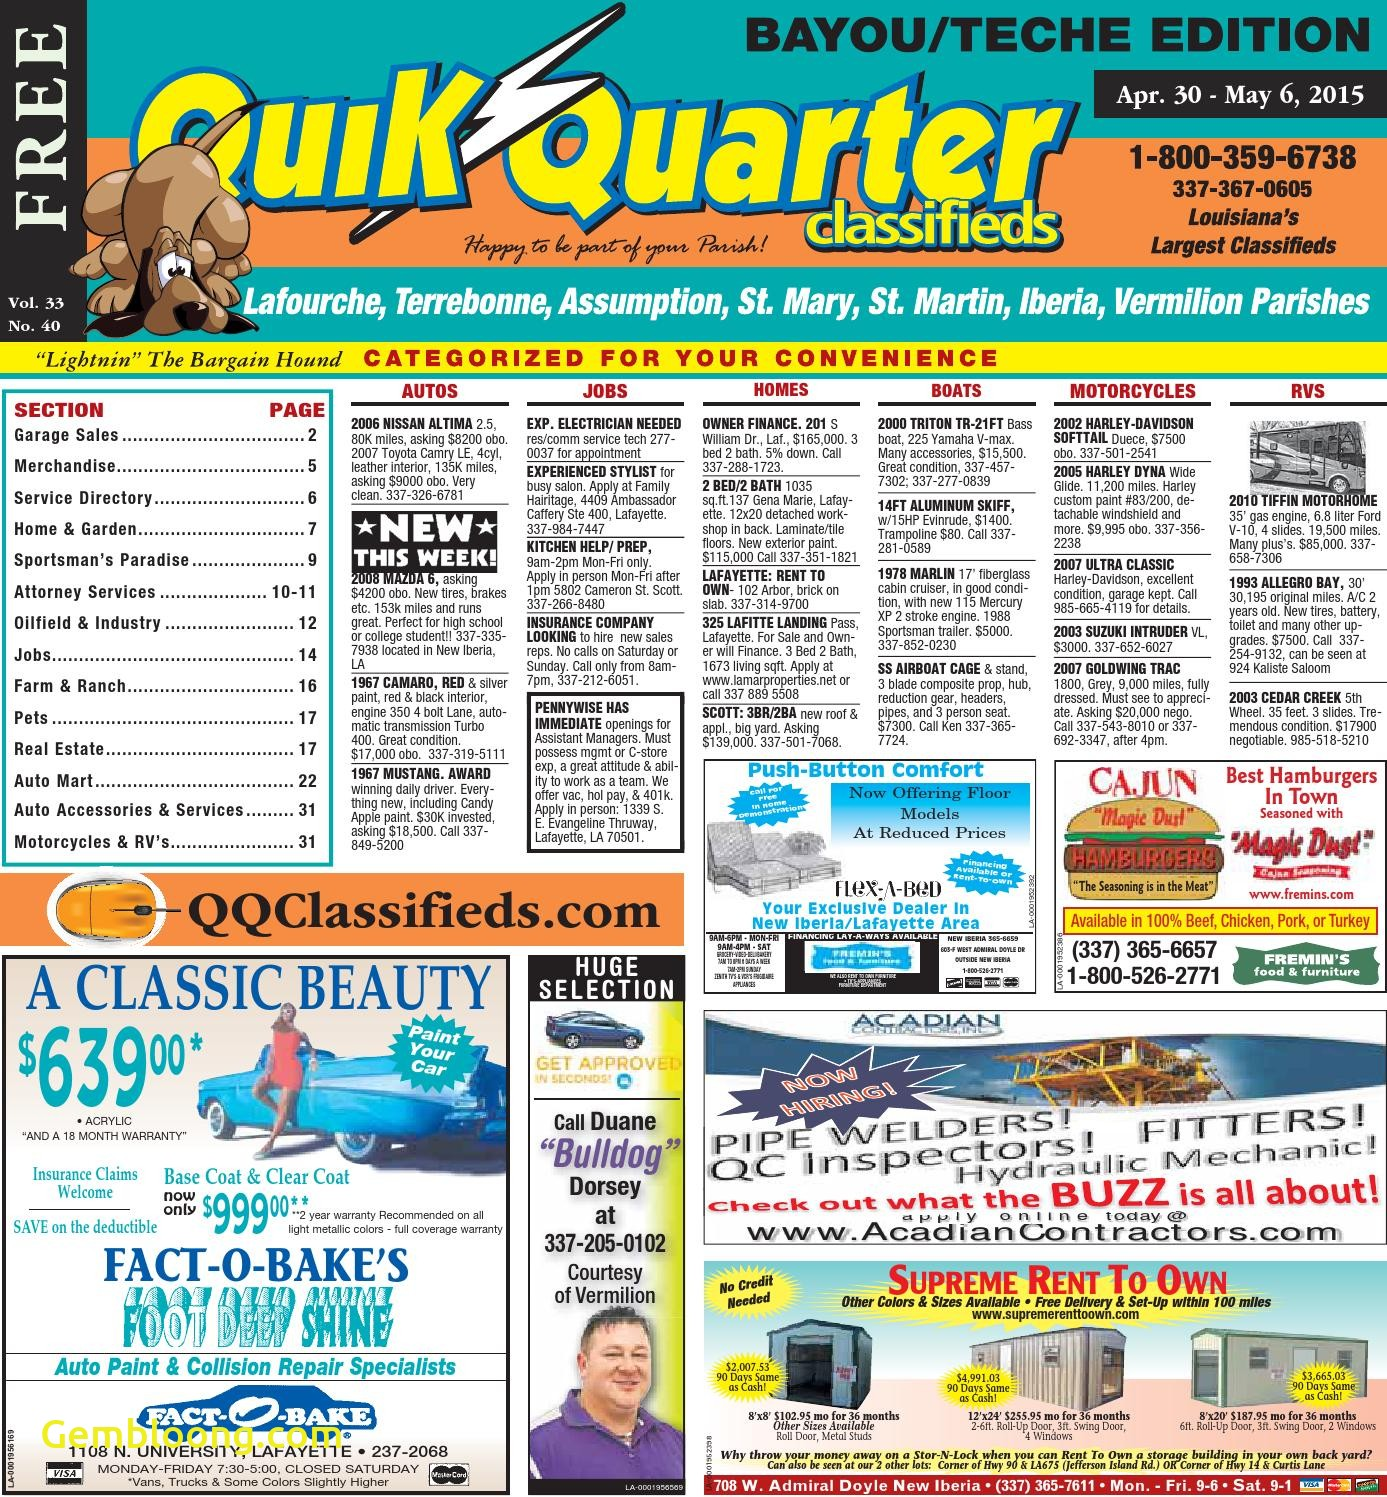 Carfax Sign Up Free Best Of Qq Teche 04 30 2015 by Part Of the Usa today Network issuu